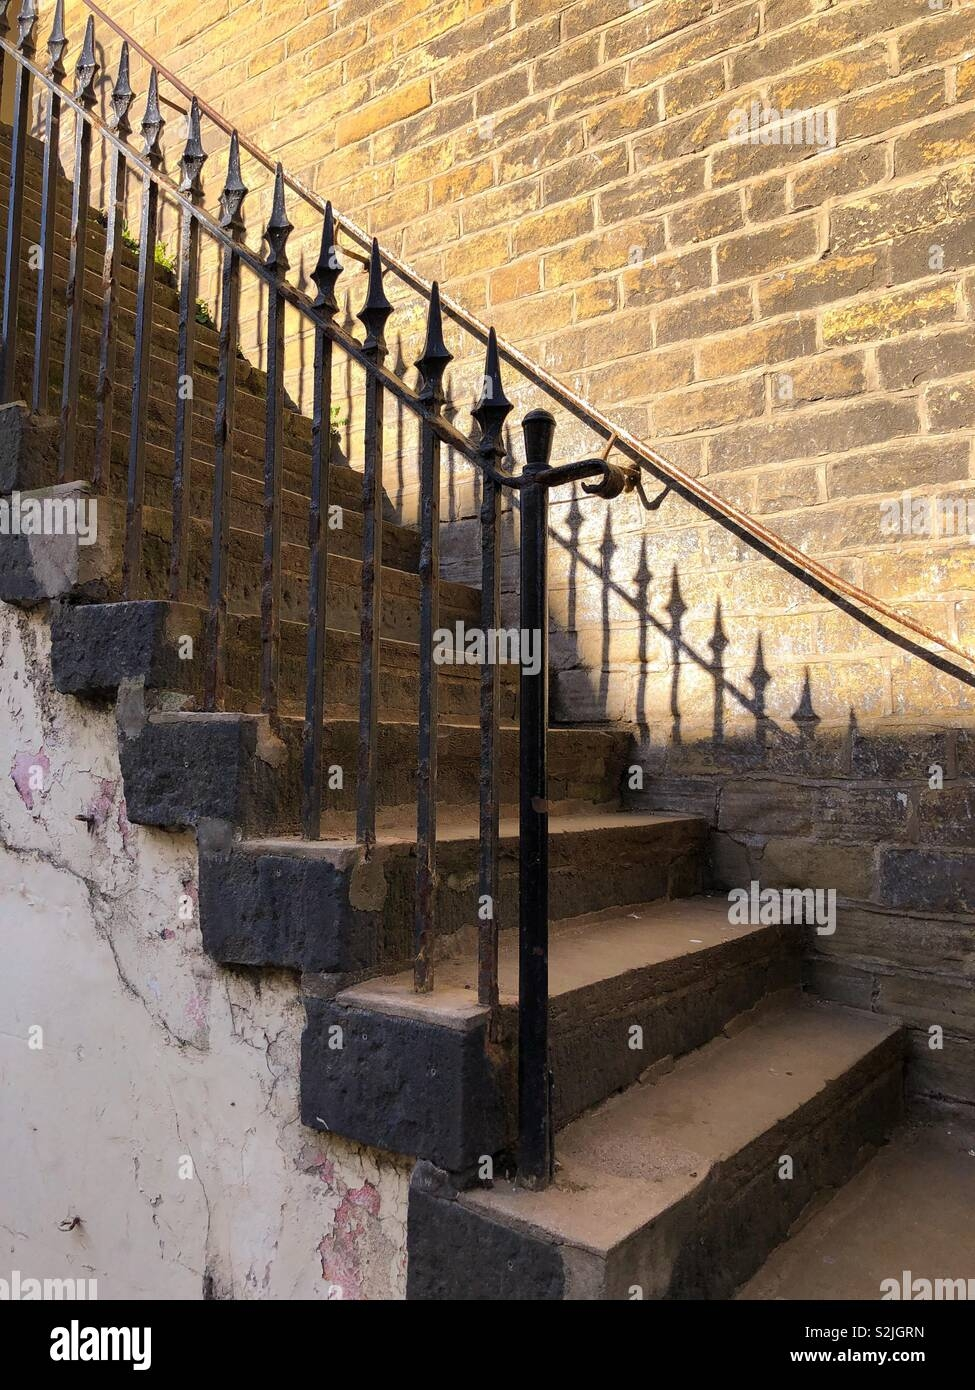 Flight Of Old Stone Steps With Wrought Iron Railings Leading Up | Wrought Iron Railings For Steps | Custom | Metal | 2 Step | Rough Iron | Exterior